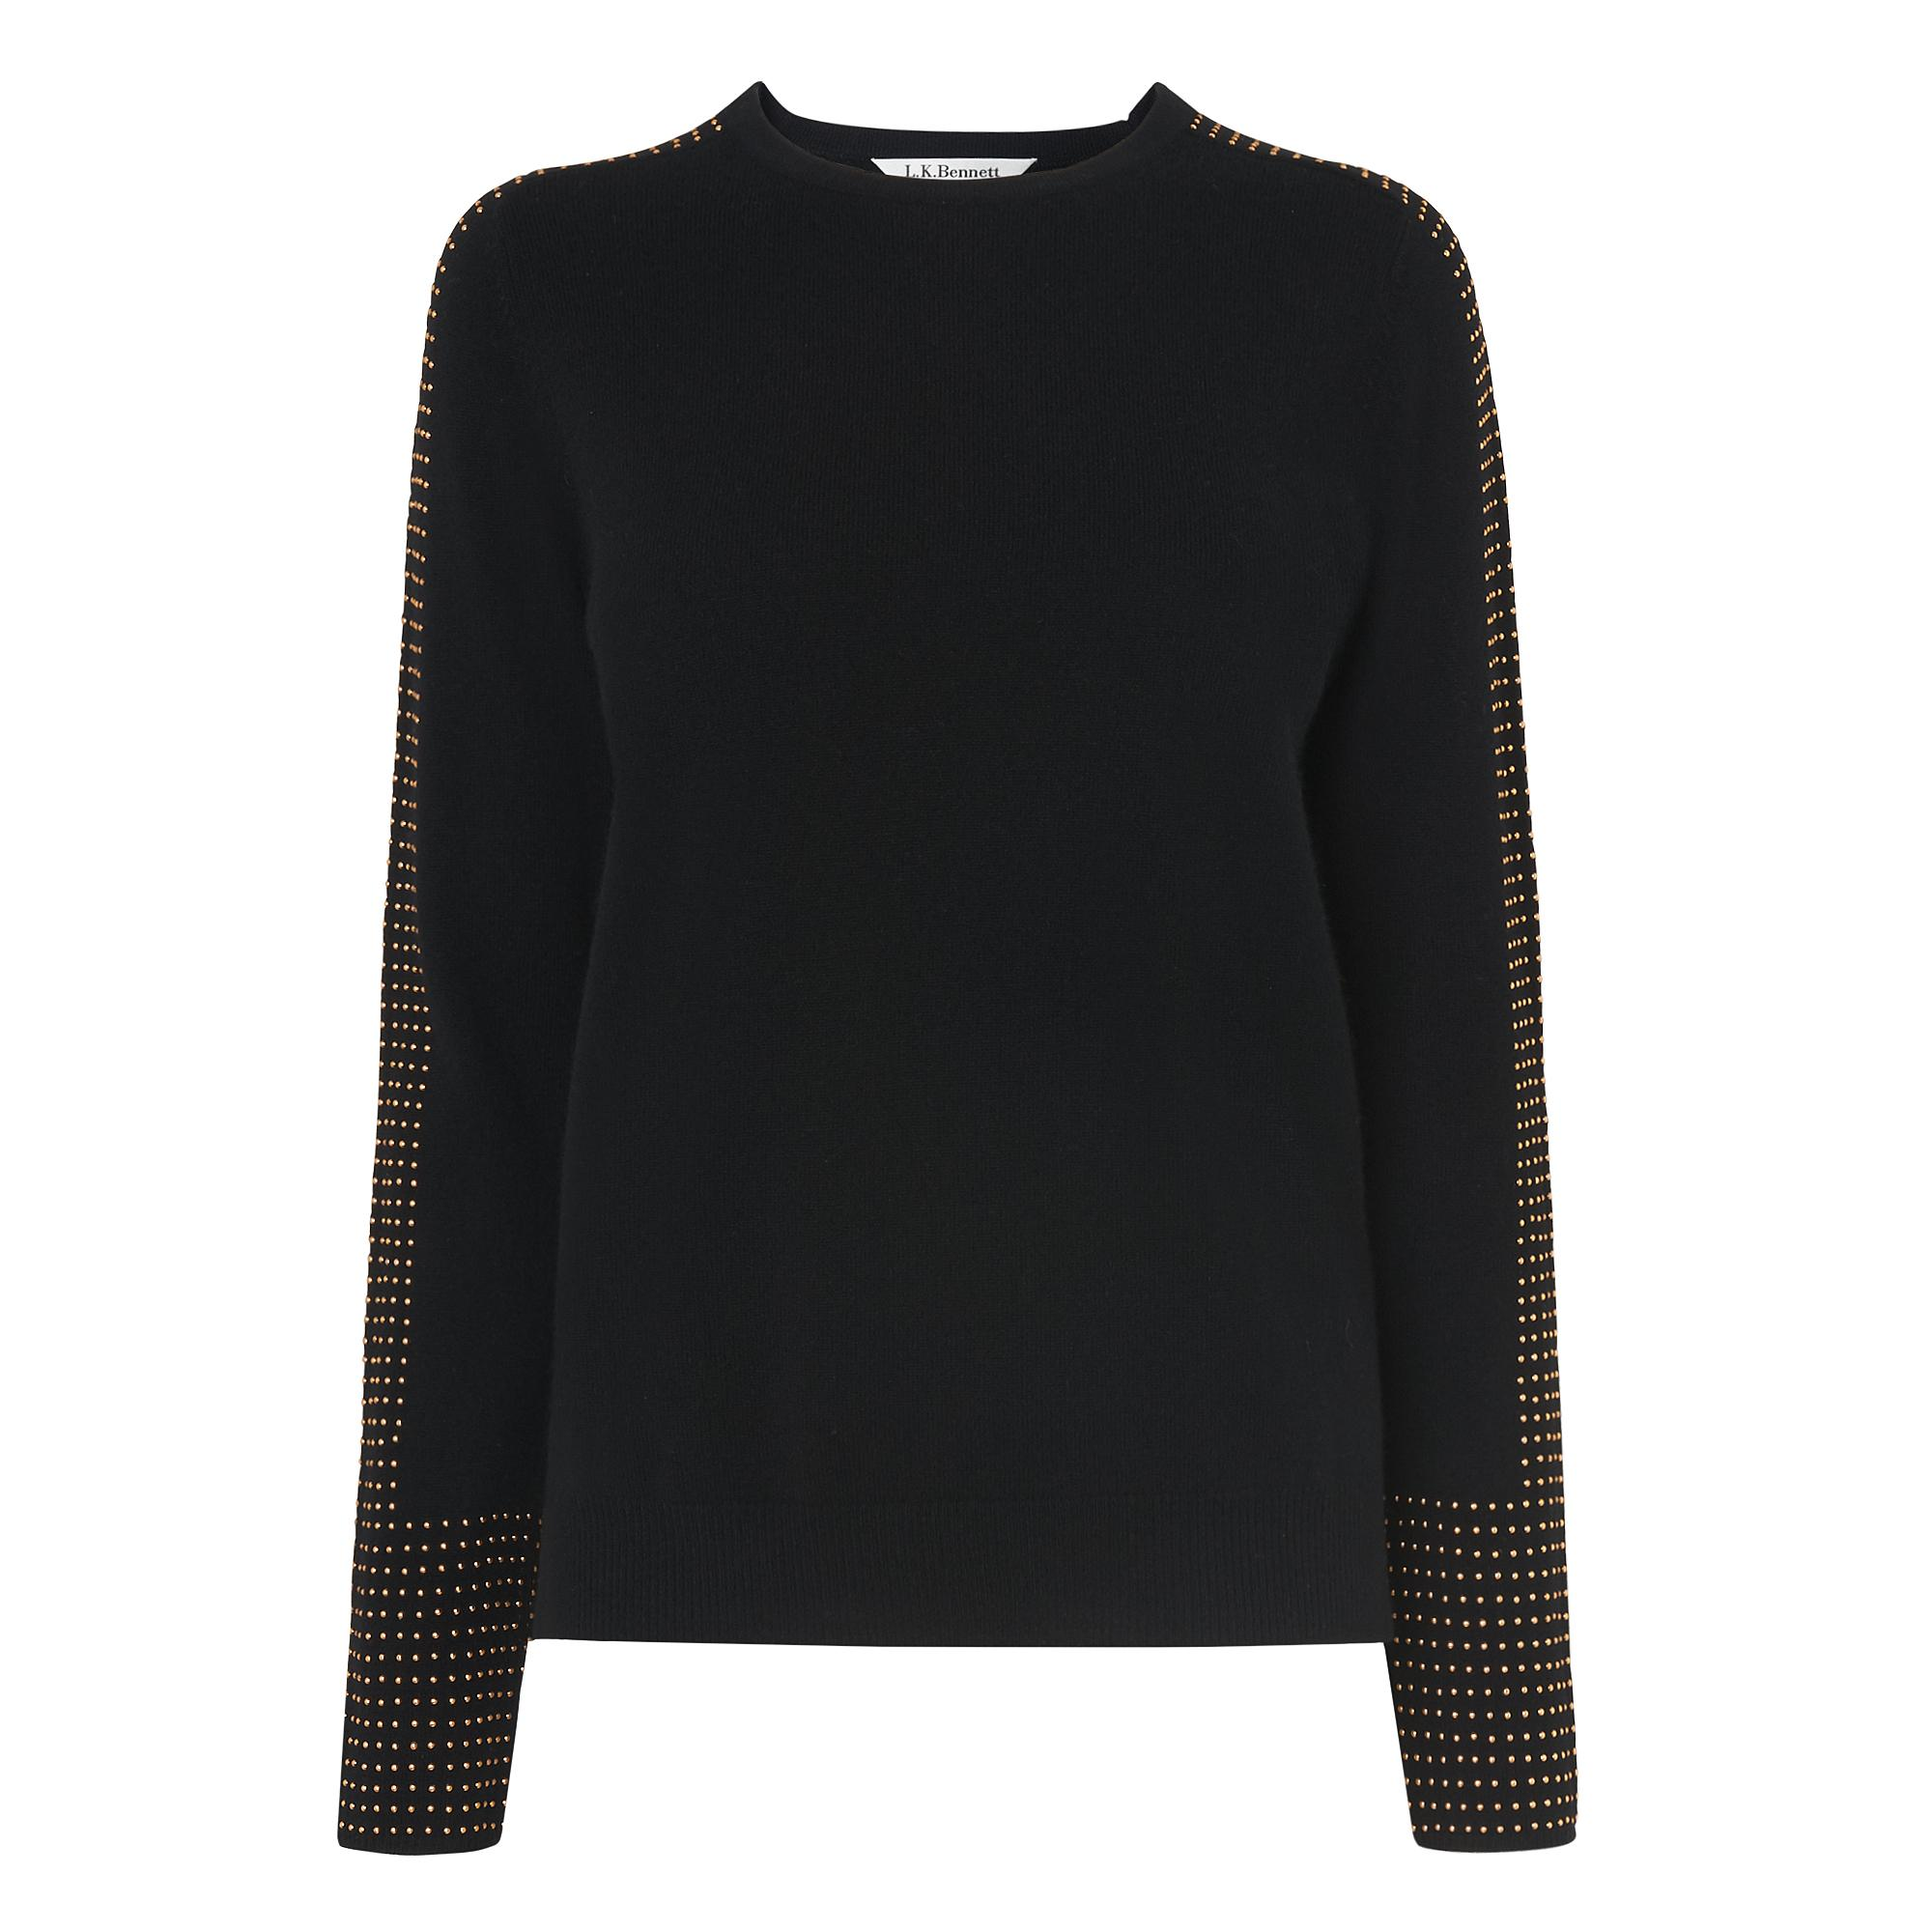 Adel Black Wool Cashmere Jumper